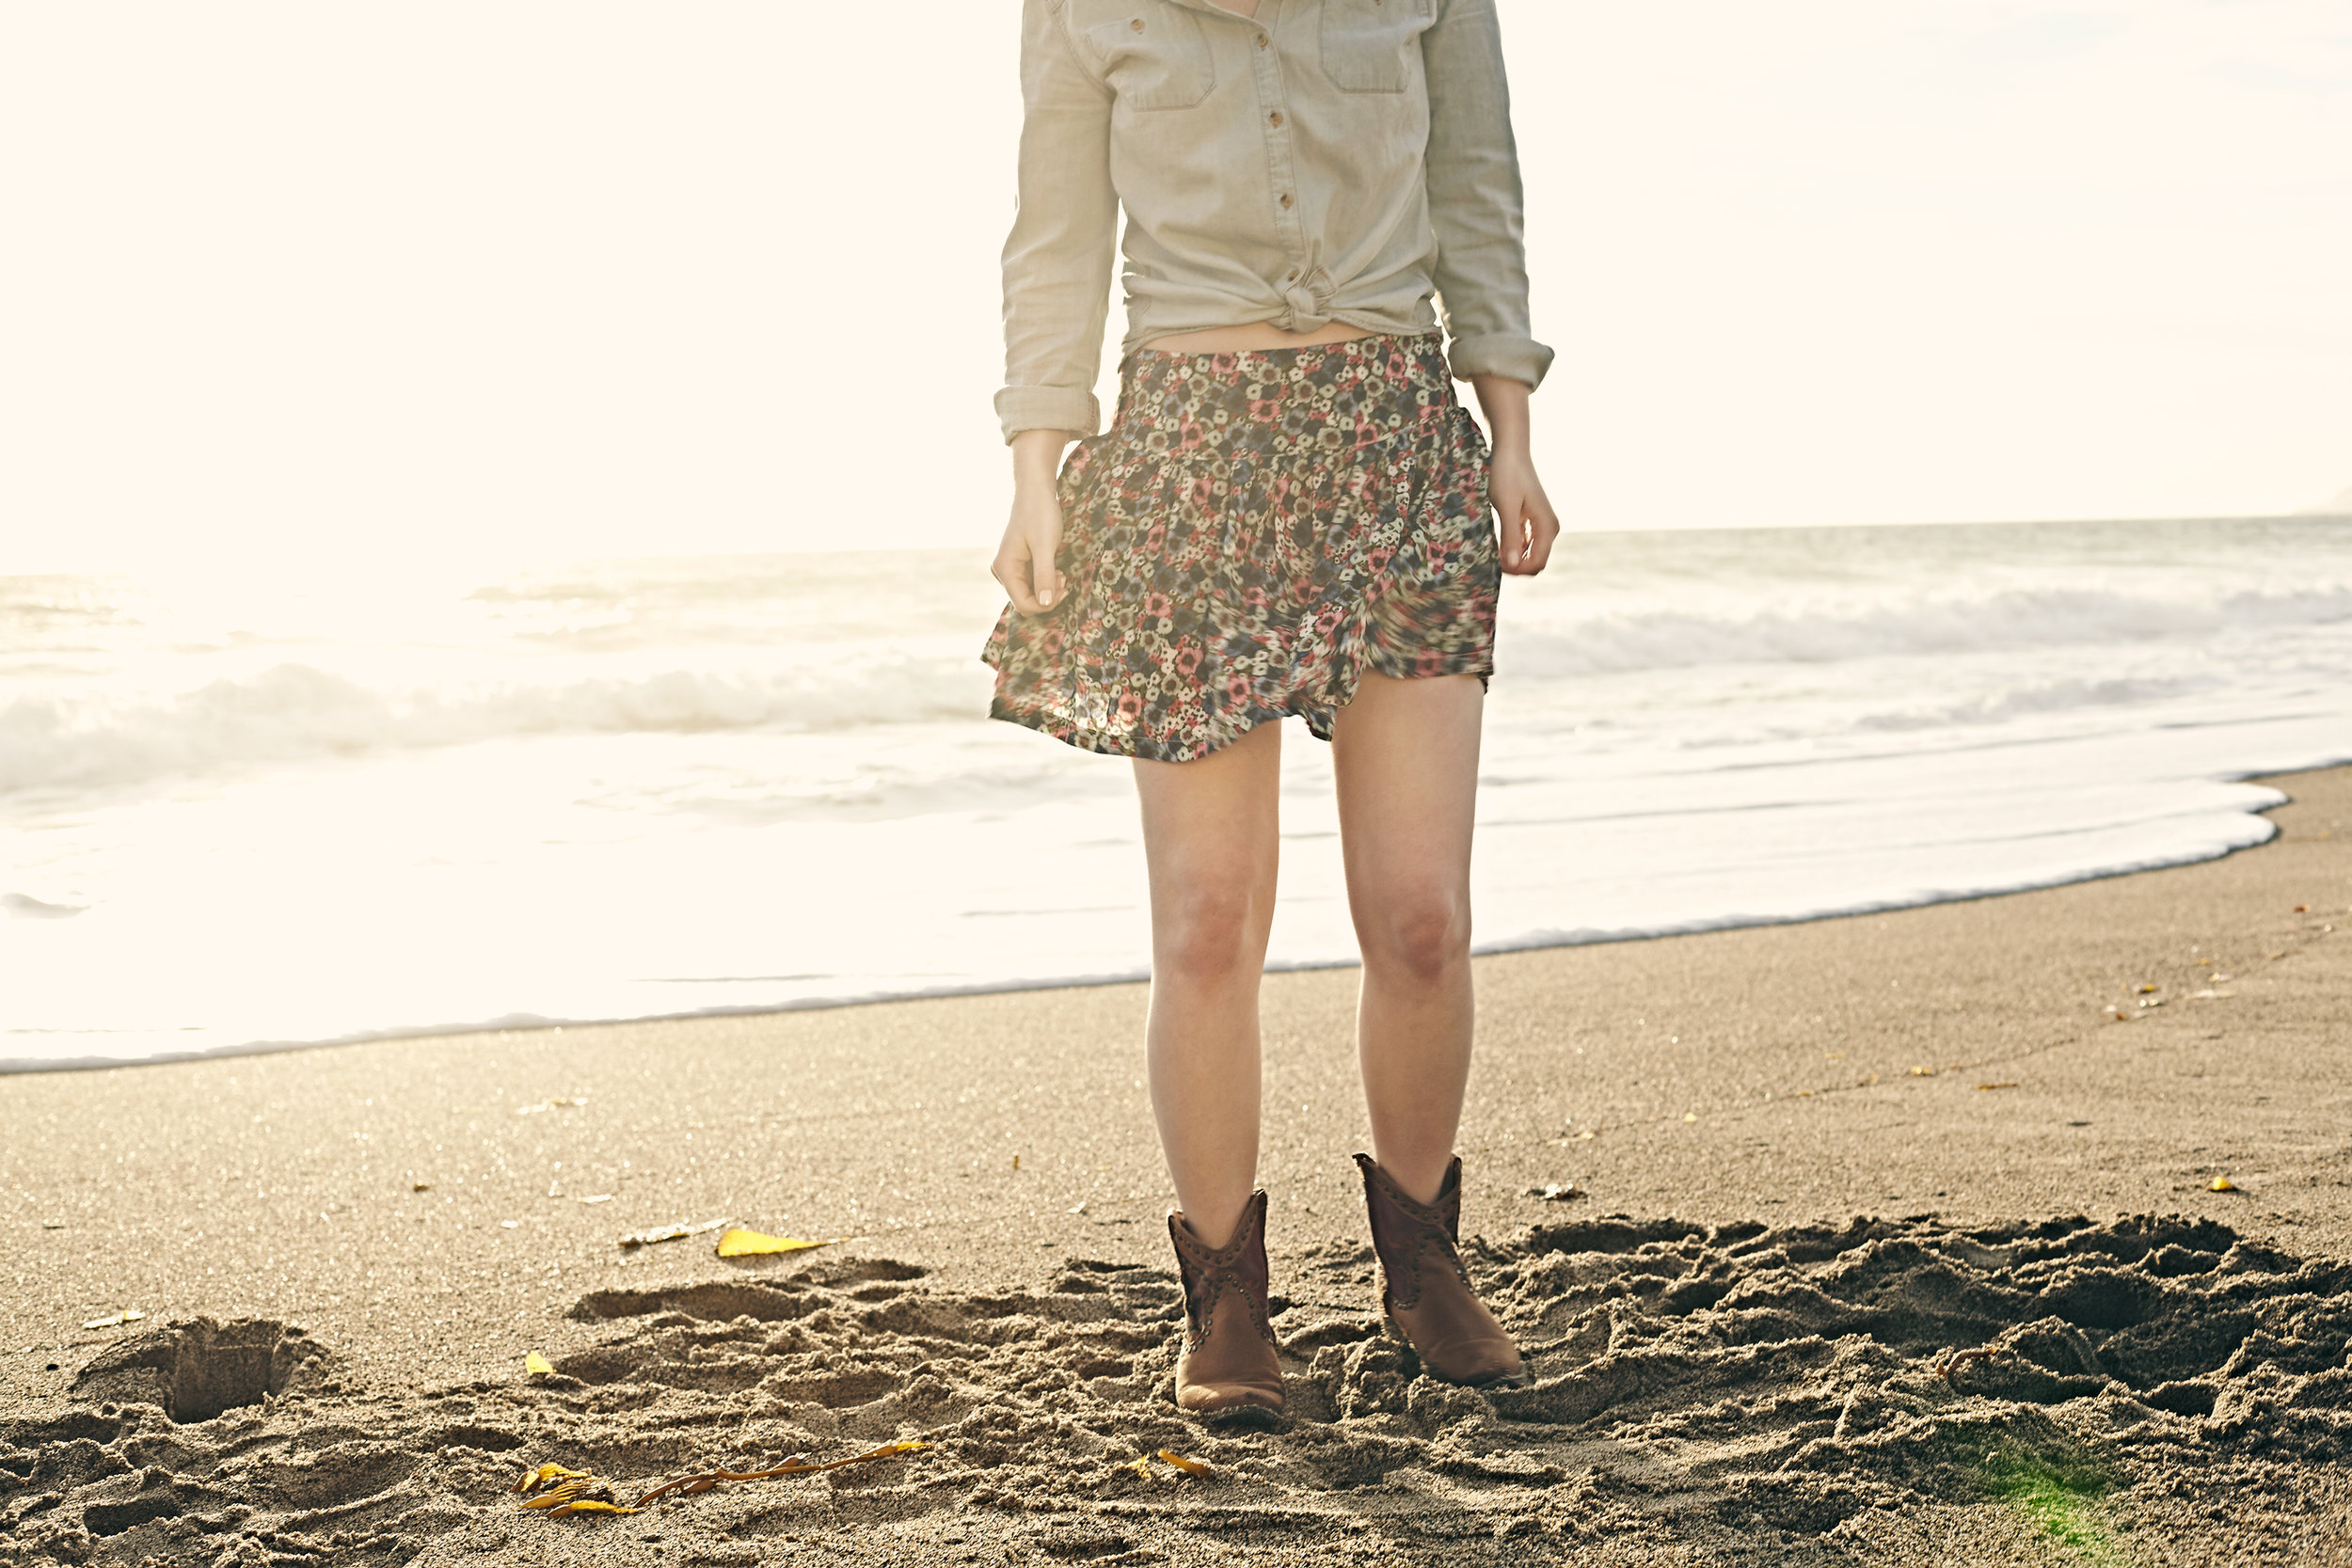 Young woman in skirt at the coastline beach at sunset